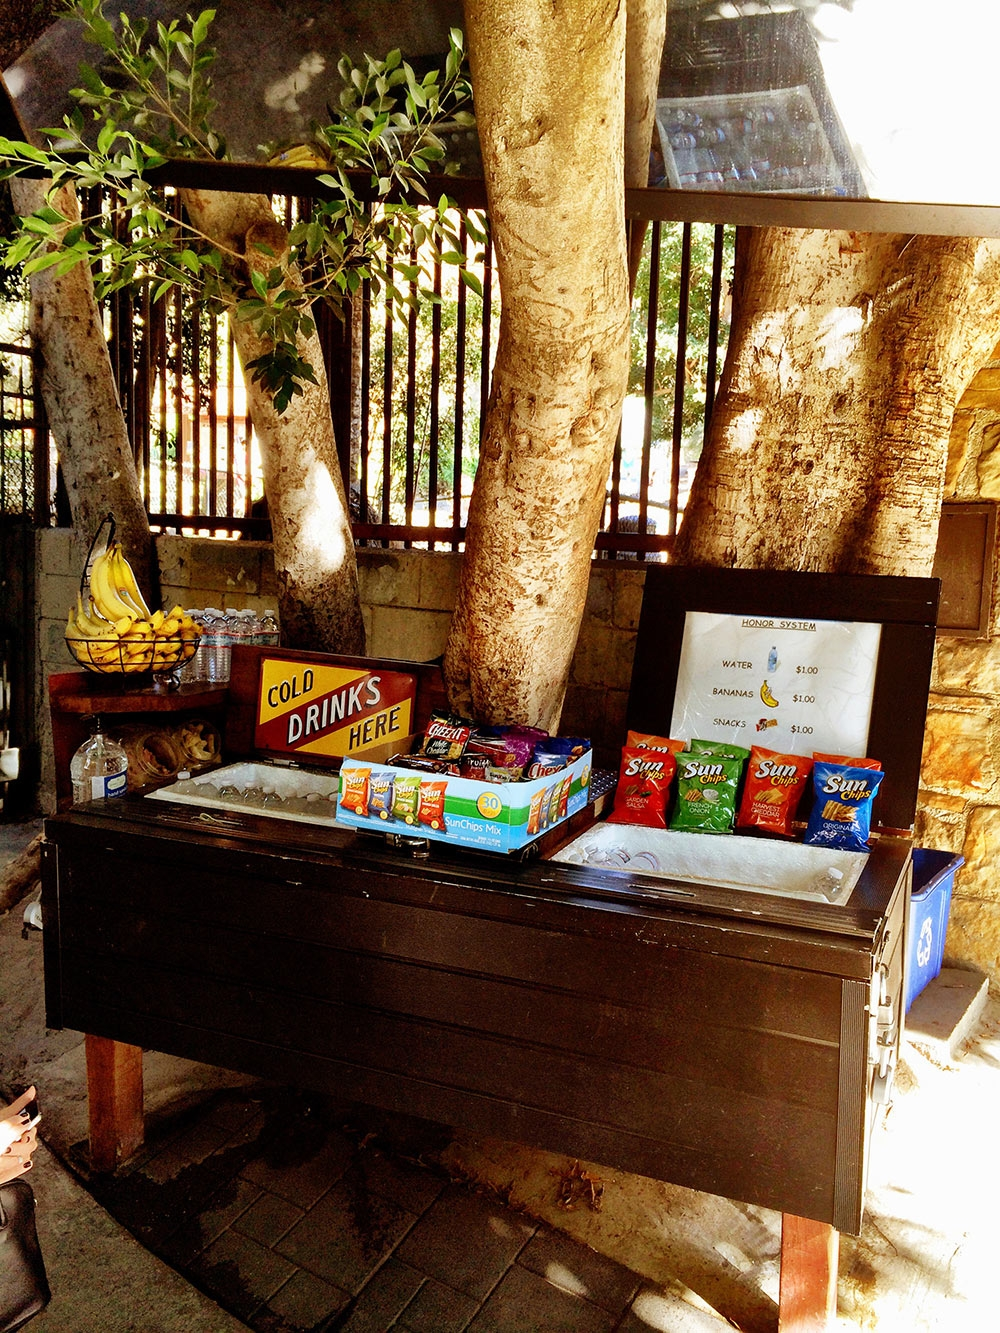 Cold drinks and snacks for sale at the bottom of Runyon Canyon